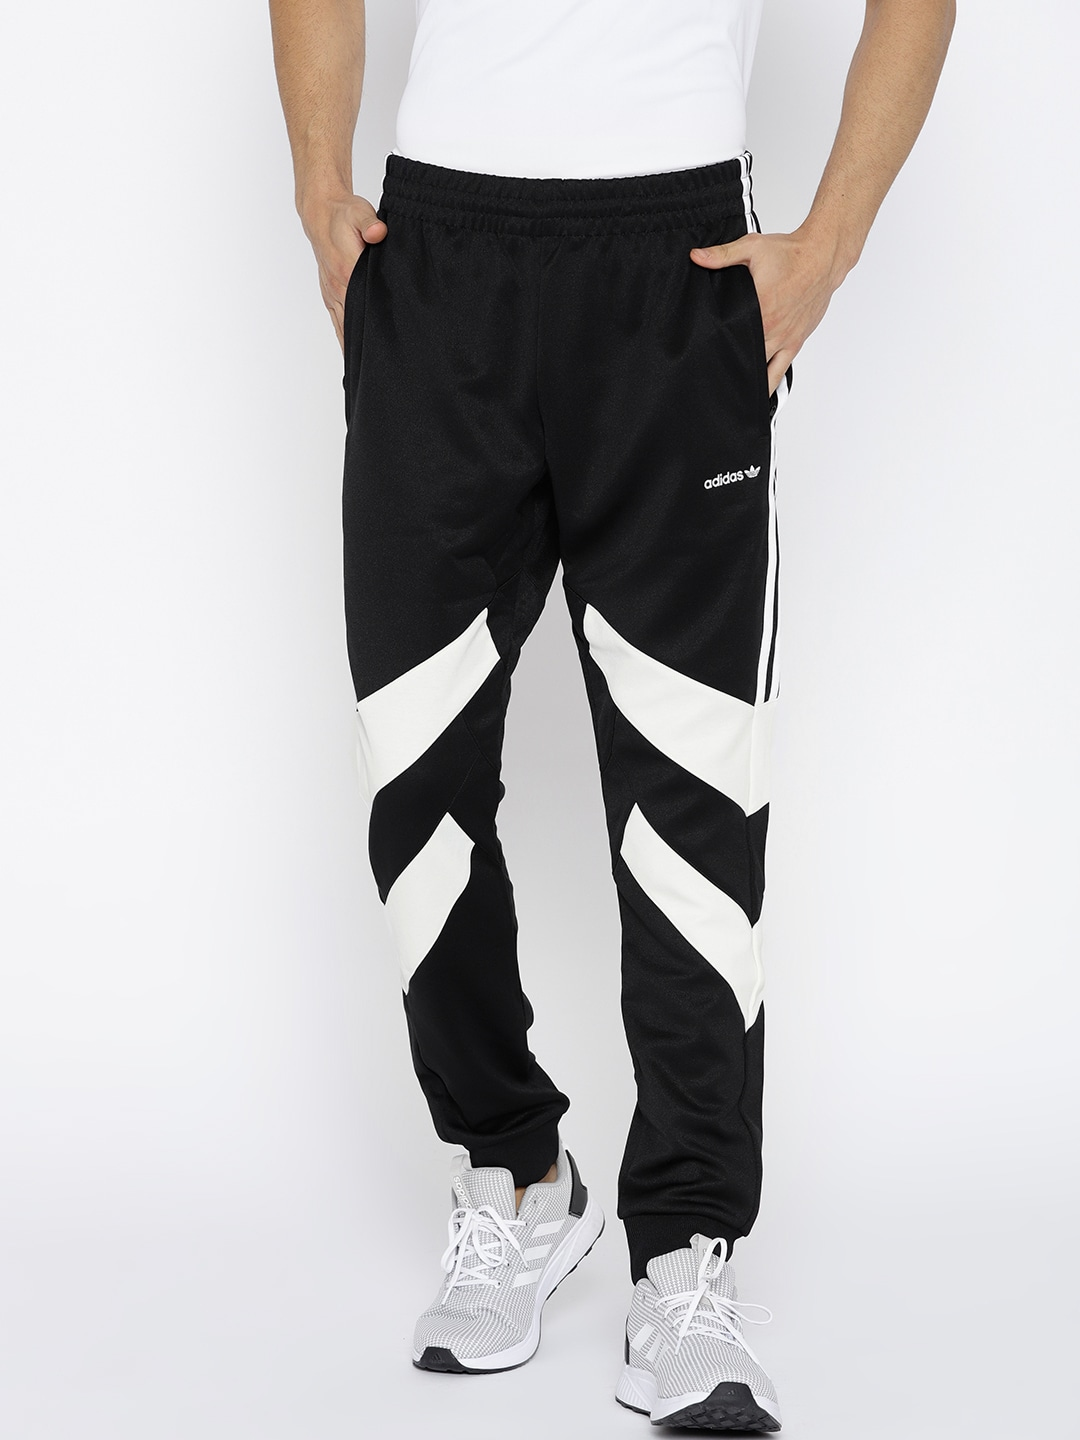 883c0d6073bd Adidas Originals Track Pants - Buy Adidas Originals Track Pants Online